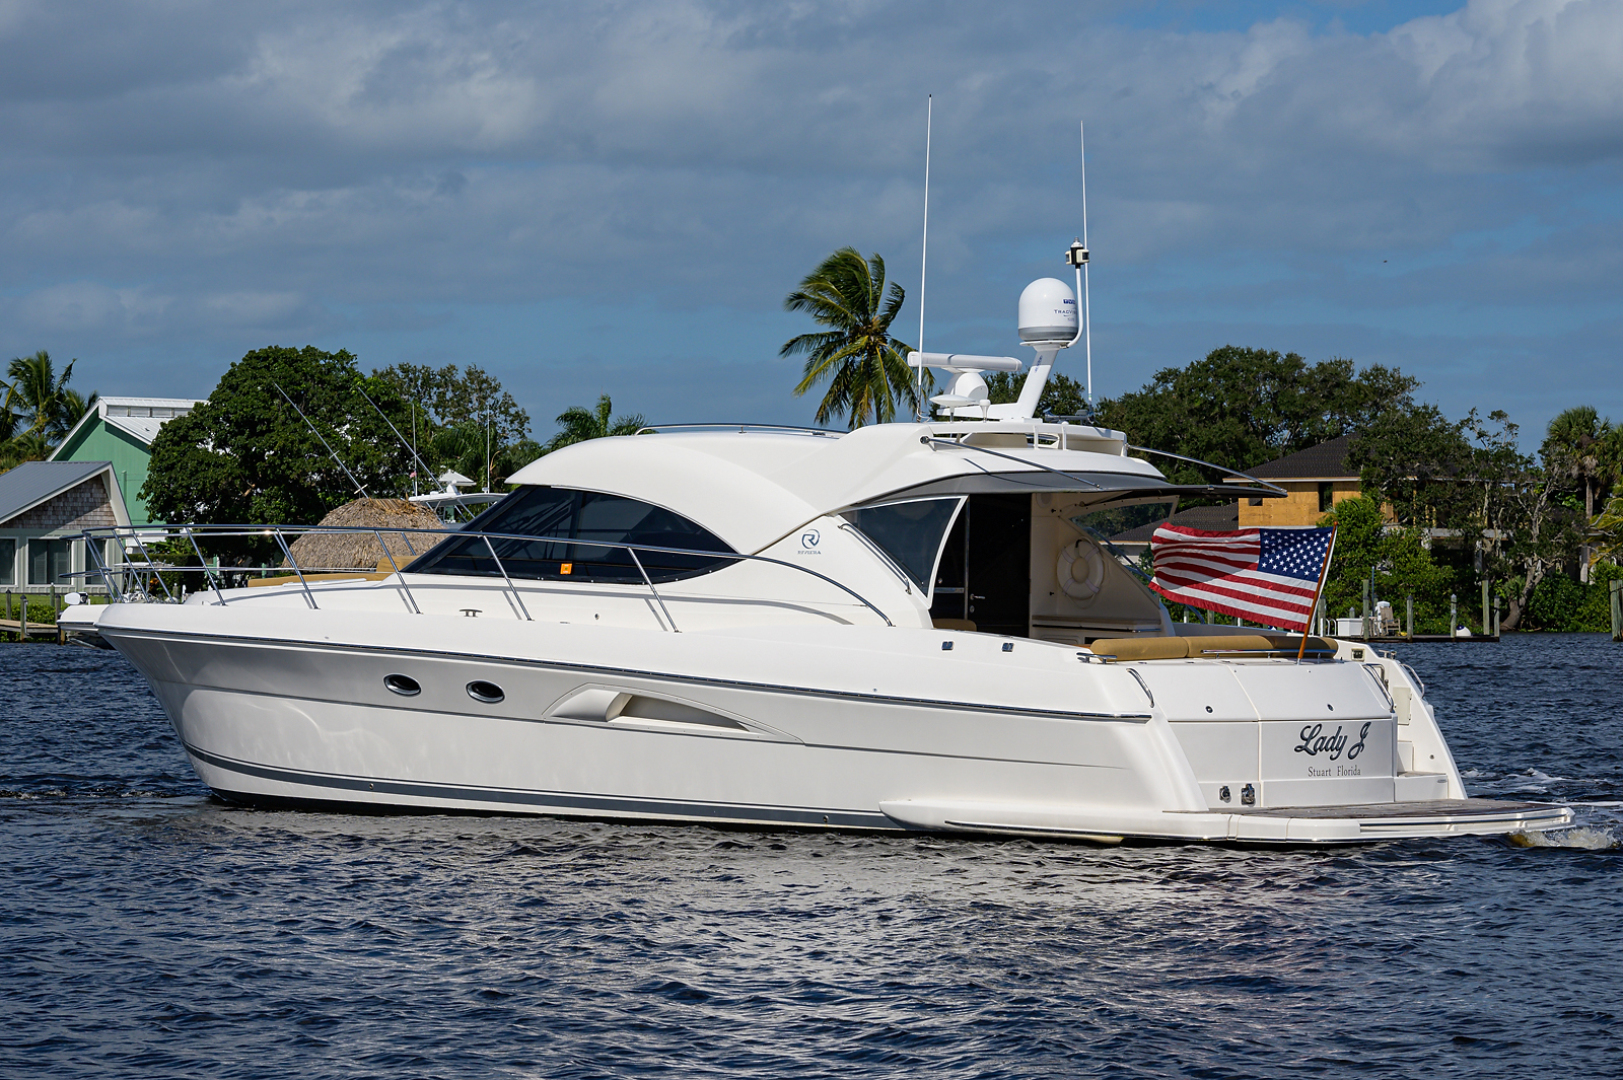 Riviera-5000 Sport Yacht 2012-Lady J Palm Beach-Florida-United States-1553491 | Thumbnail